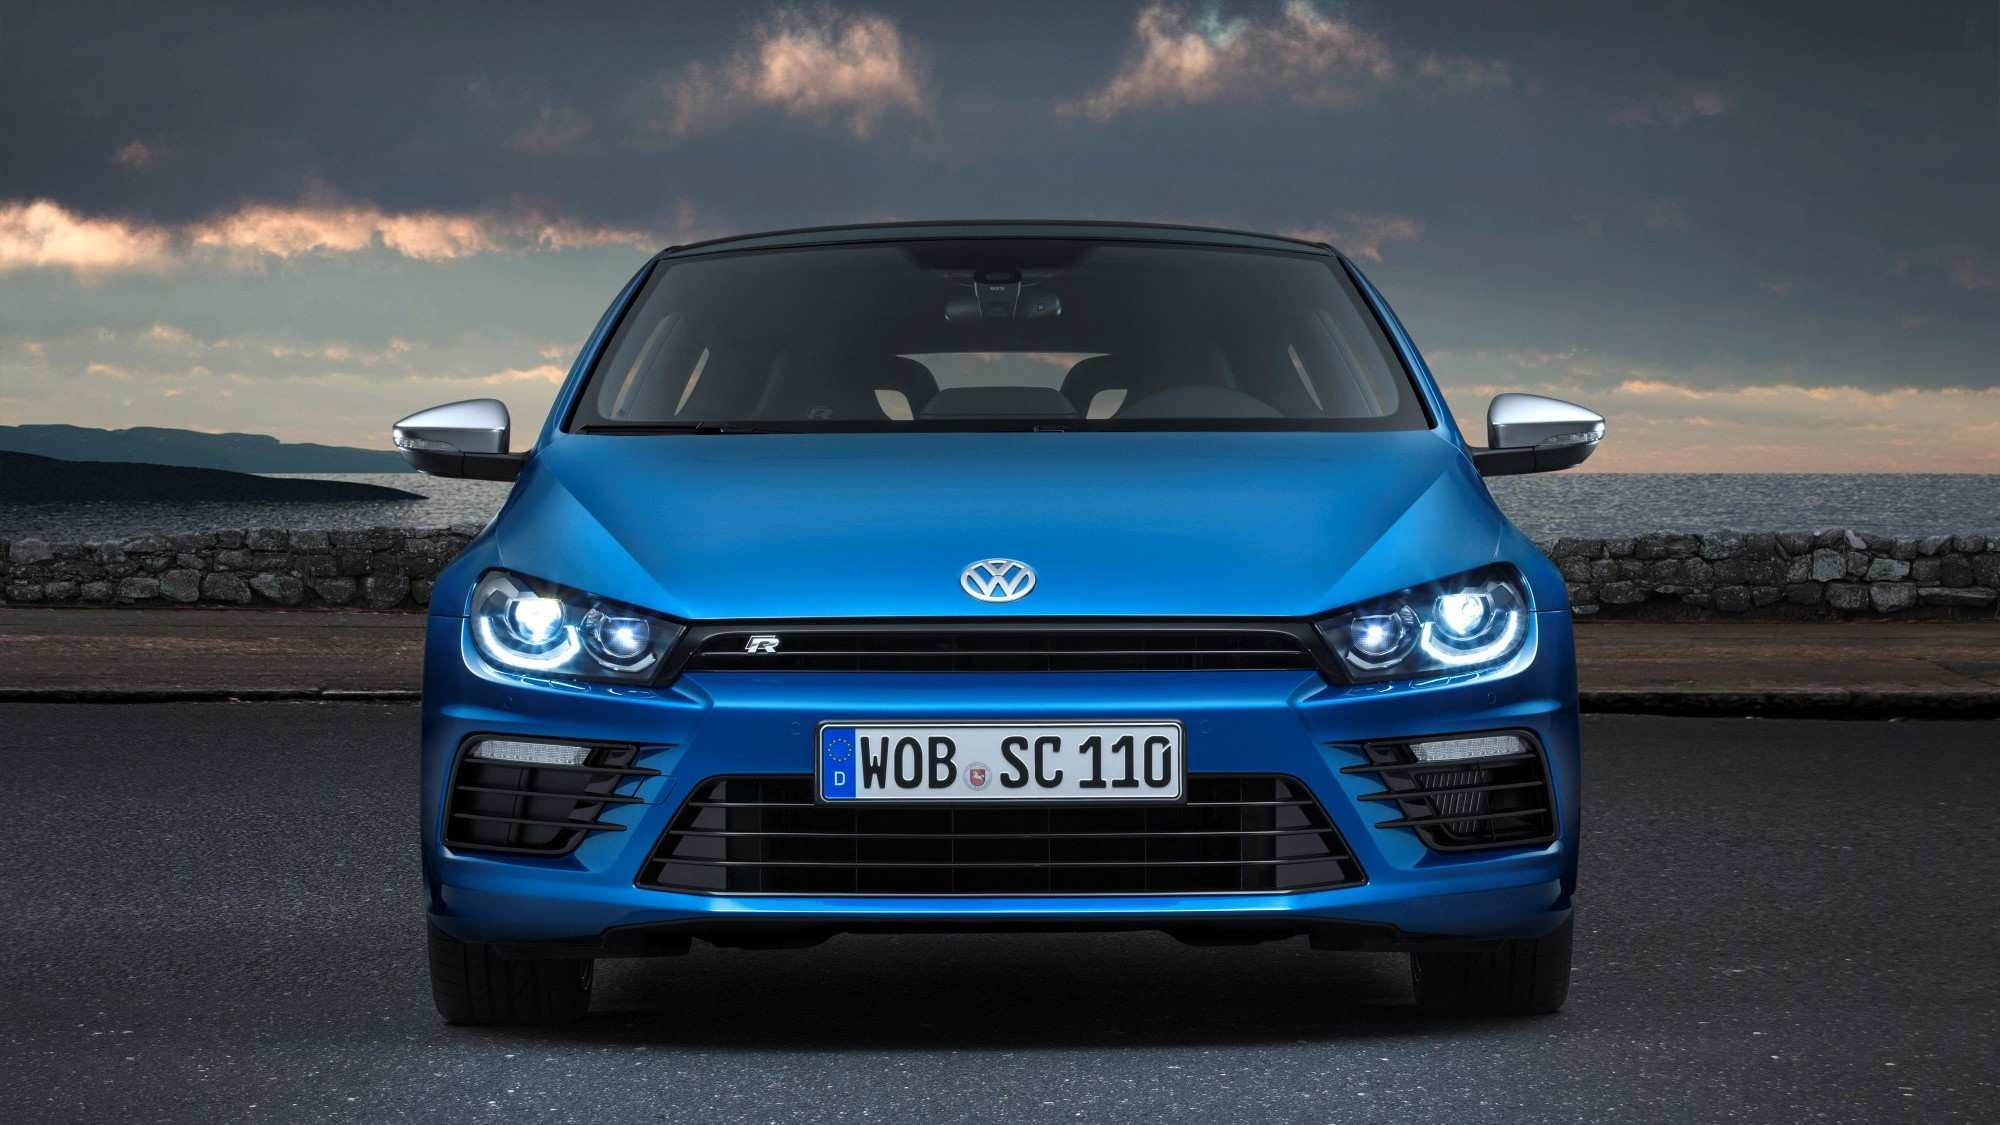 58 All New Vw Scirocco 2019 Configurations by Vw Scirocco 2019